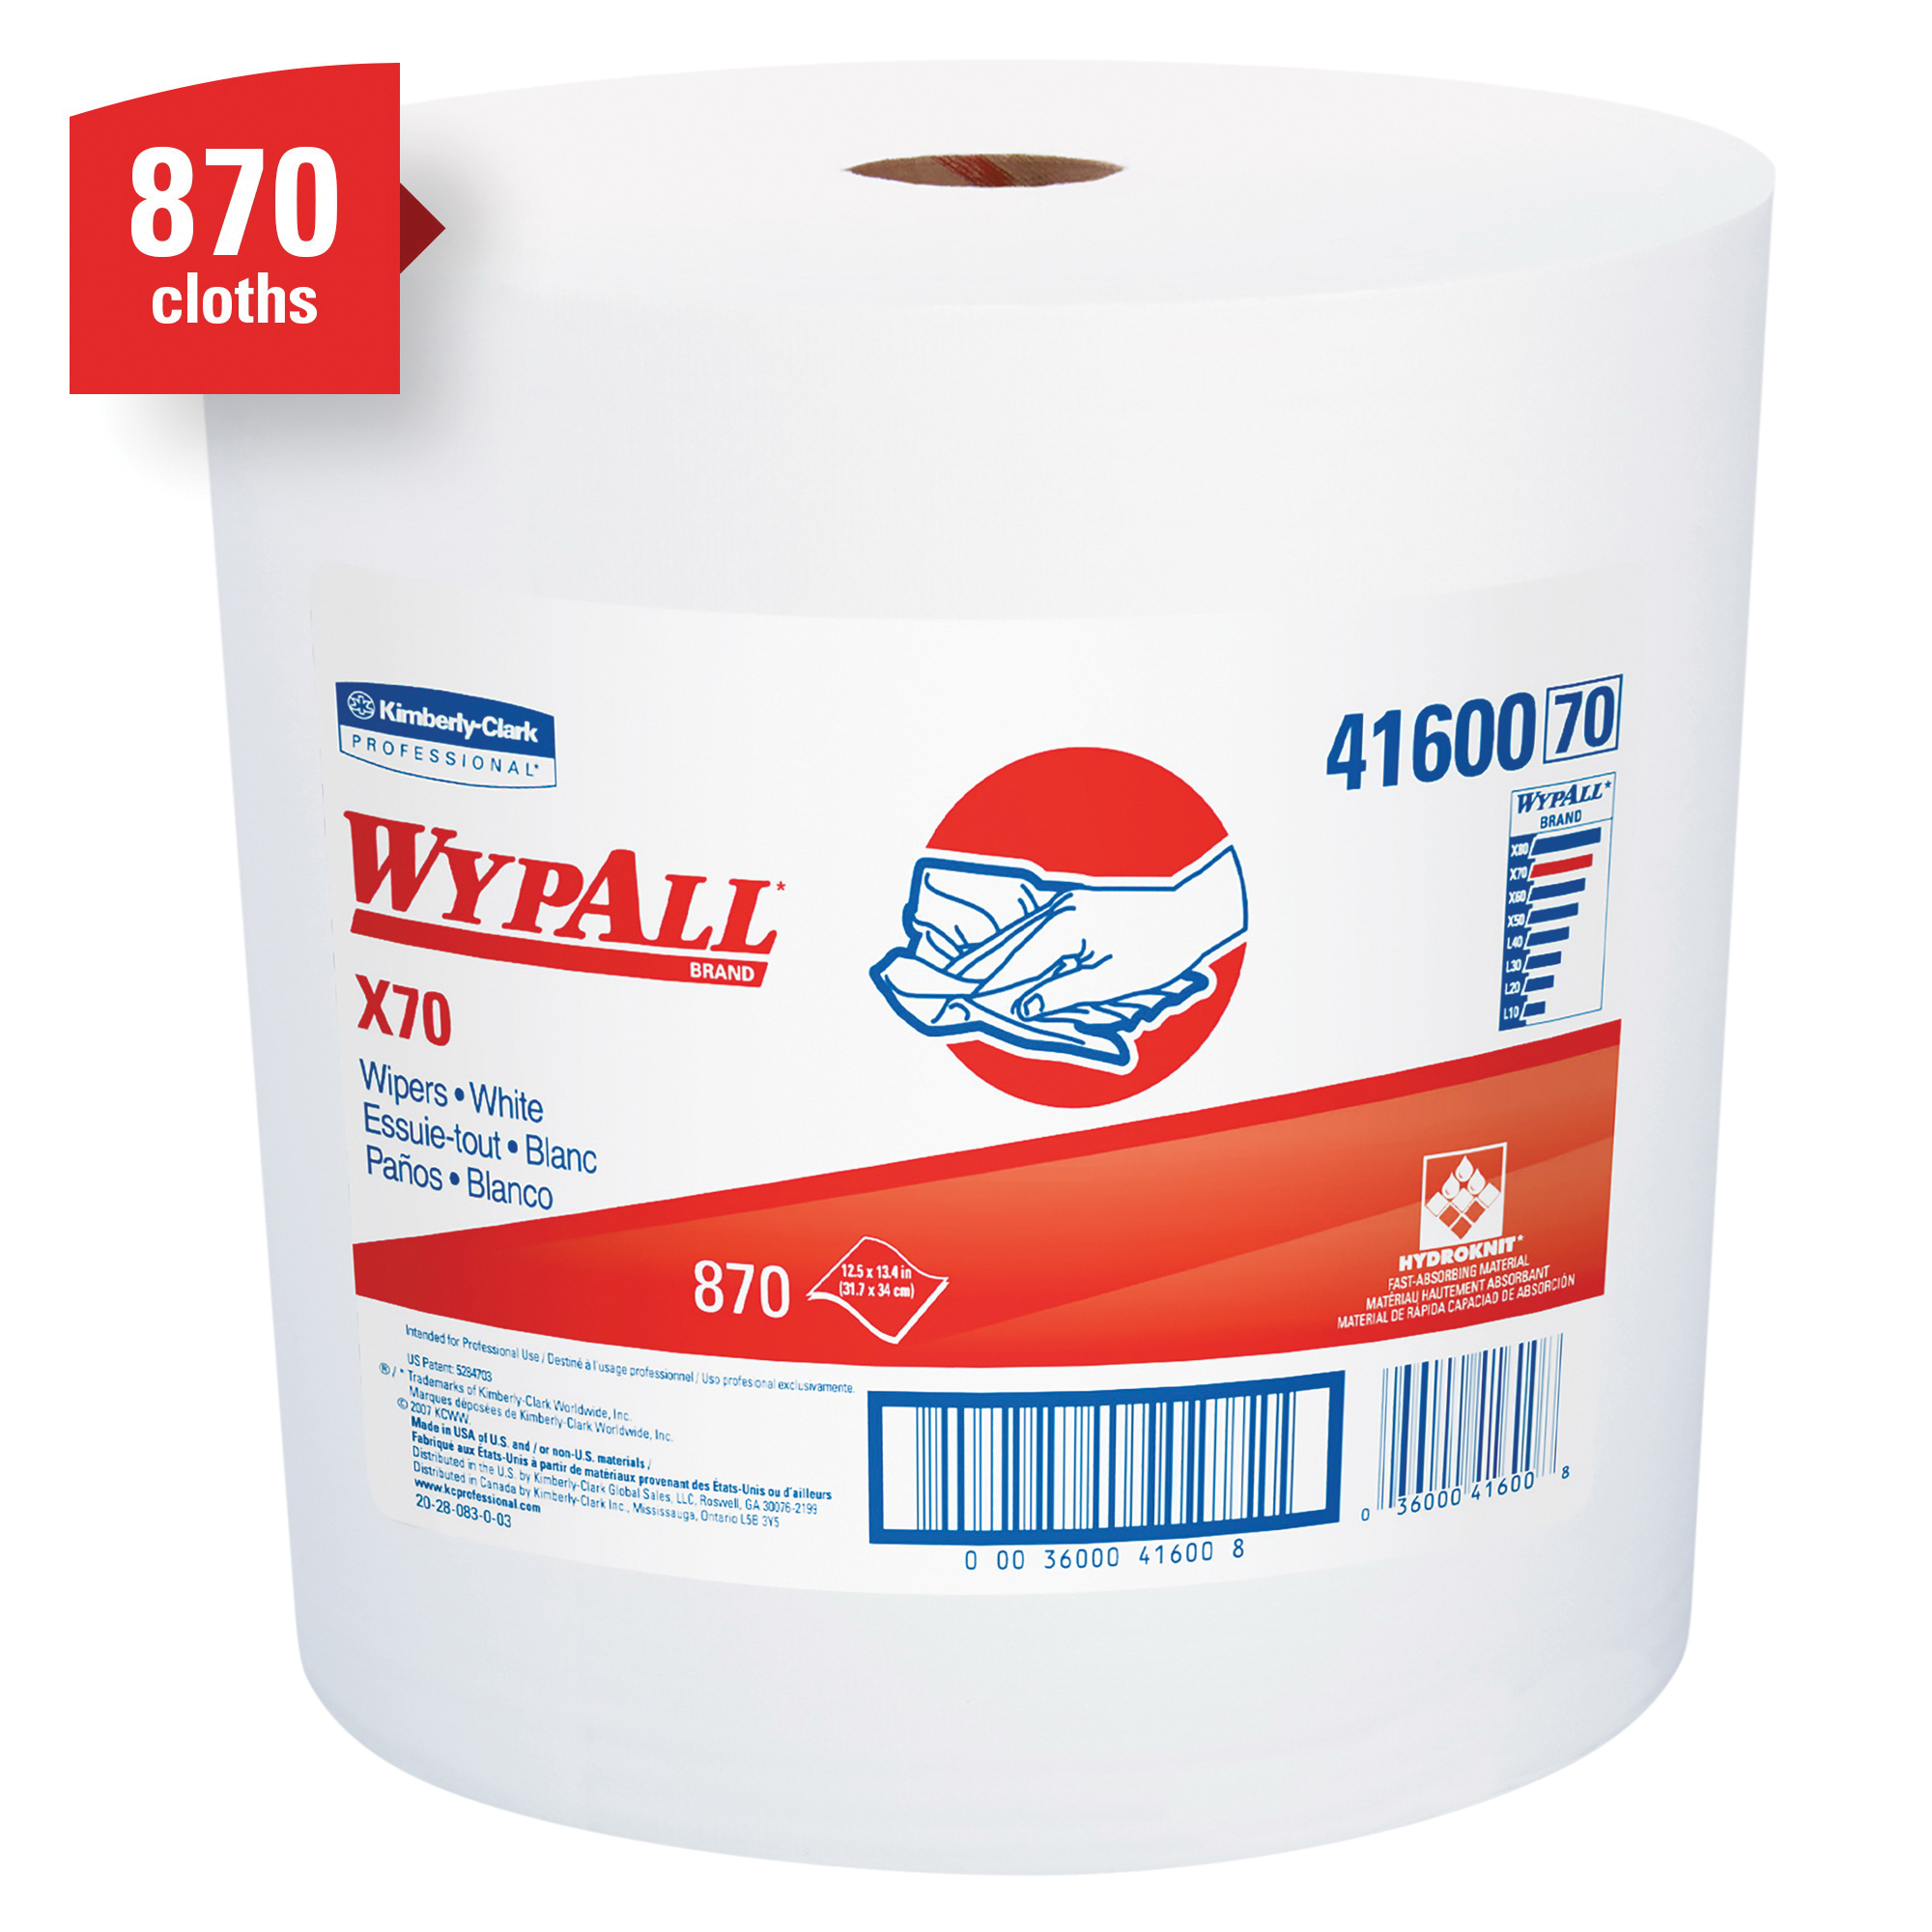 WypAll* 41455 X70 Long Lasting Reusable Cleaning Wiper, 9.1 x 16.8 in, 100 Sheets Capacity, Hydroknit*, White